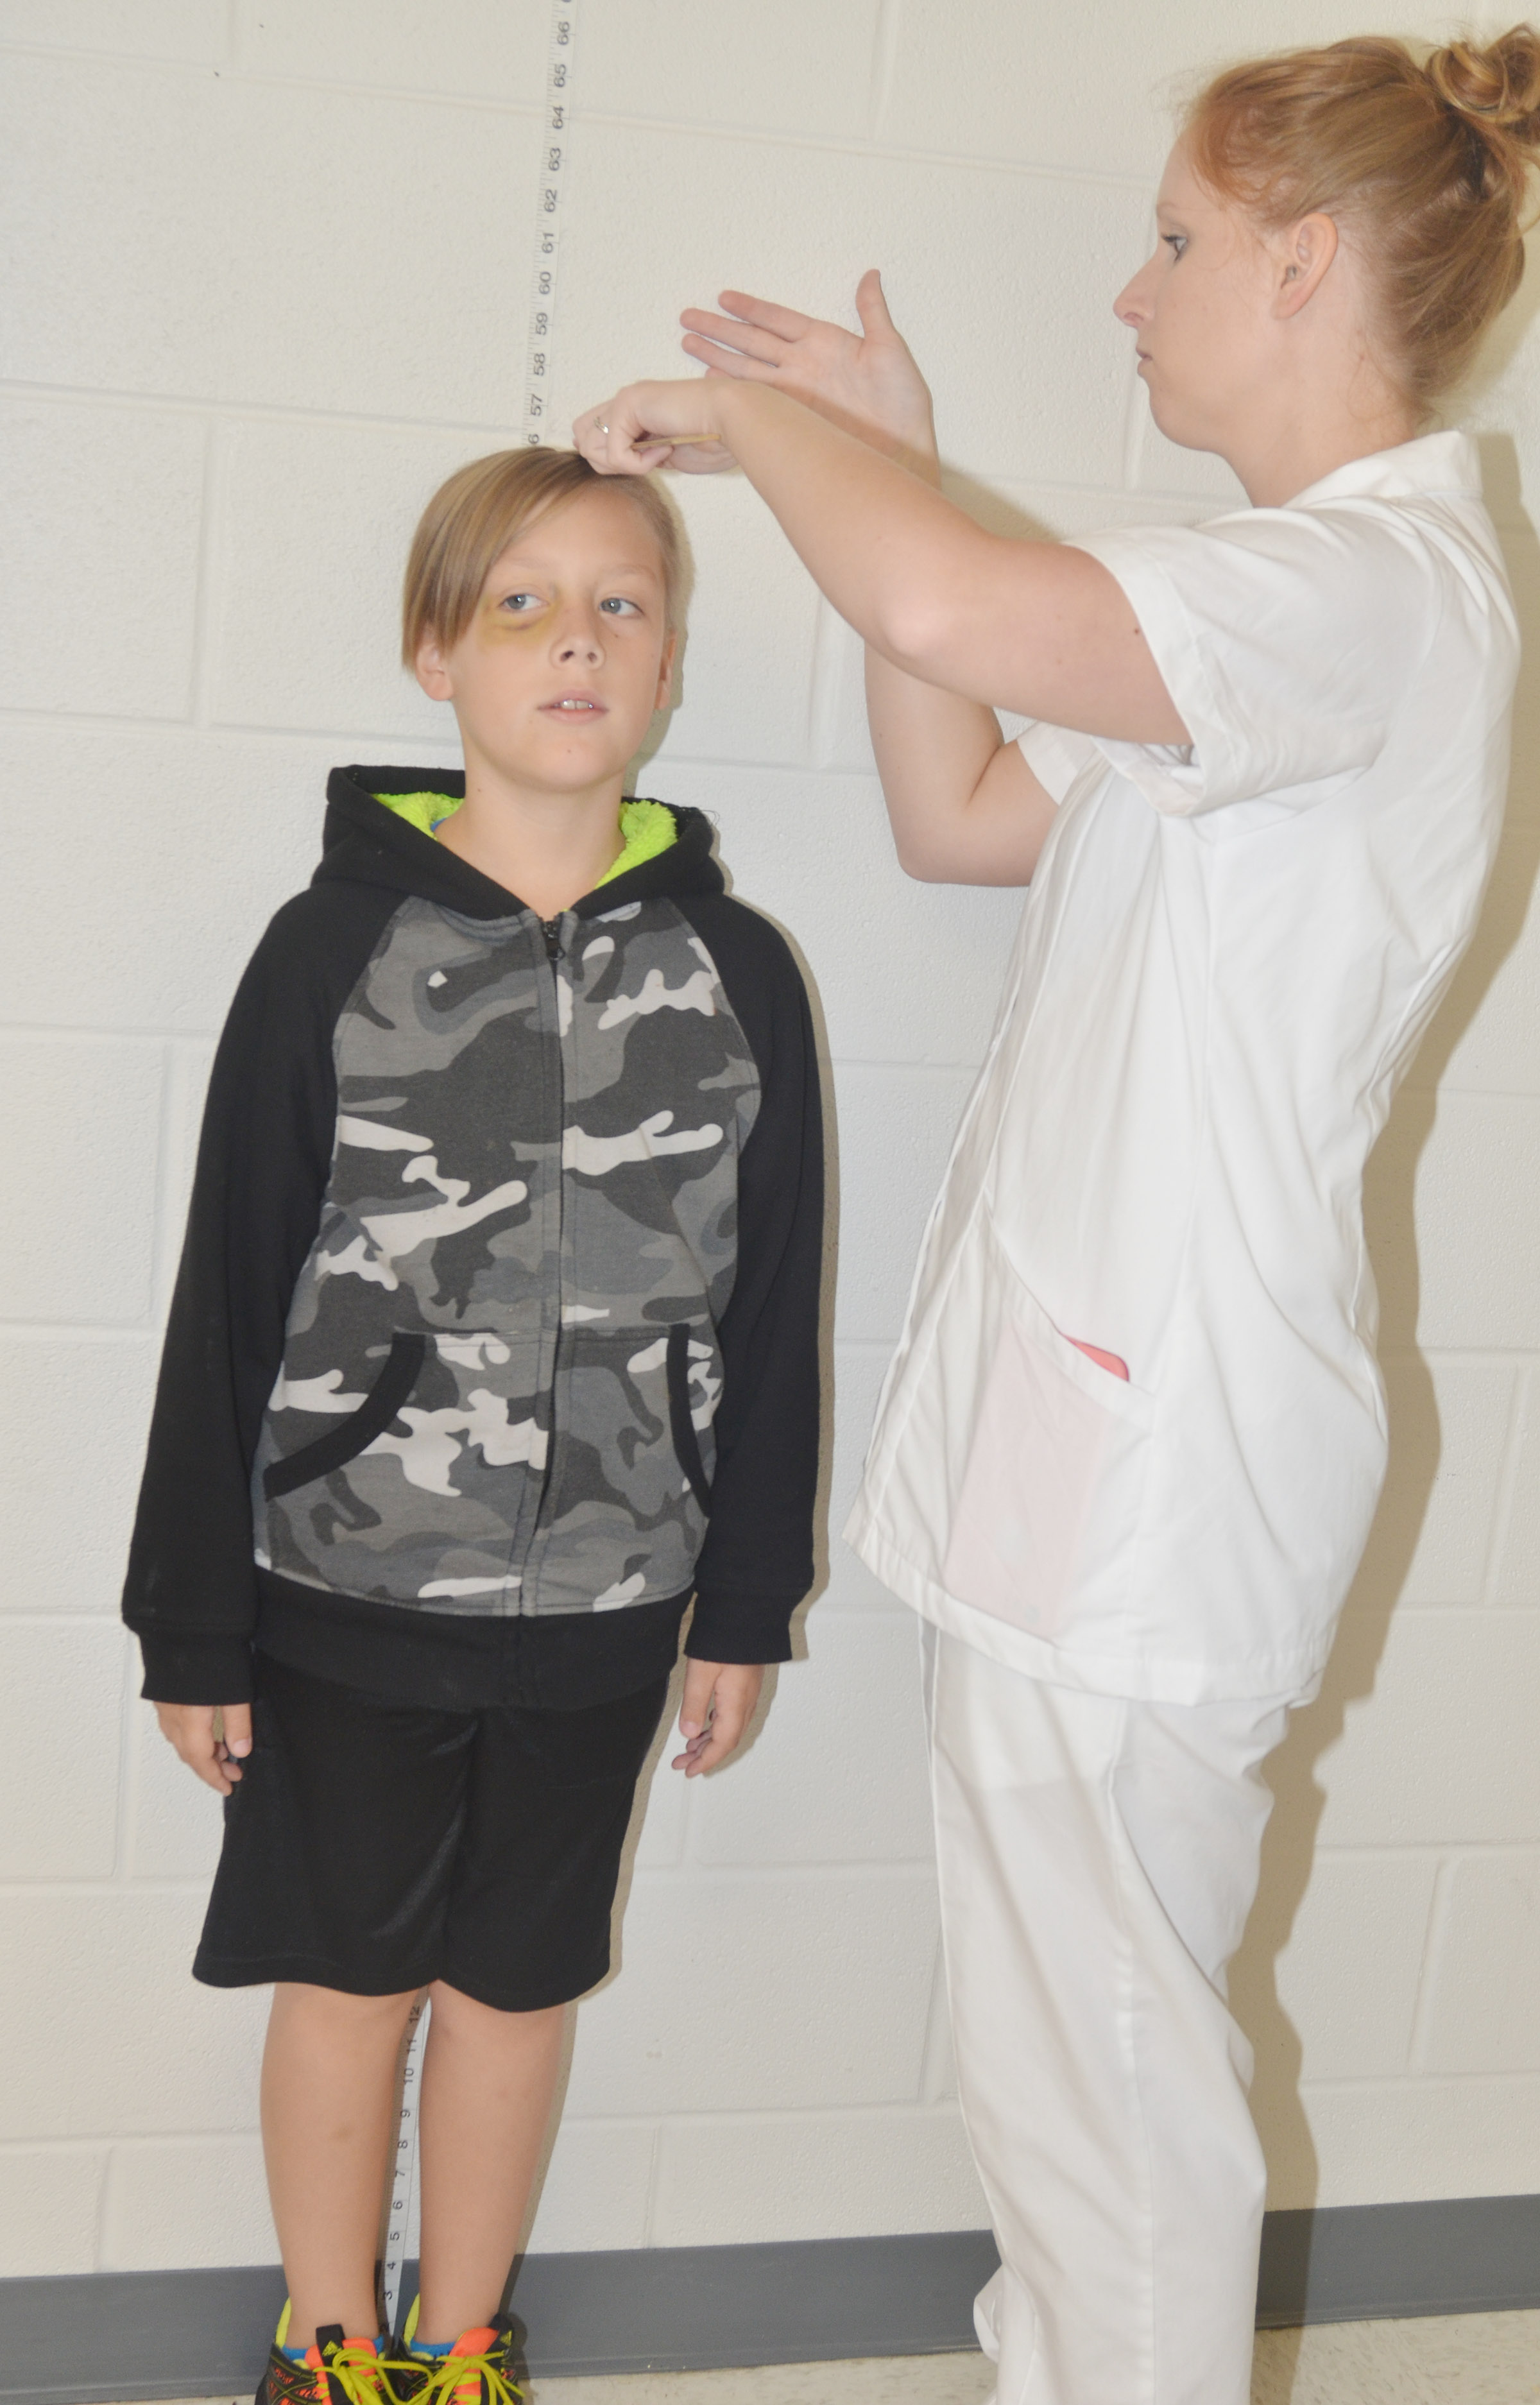 CES fourth-grader Izak Burress has his height measured by Campbellsville University nursing student Danielle Hundley.